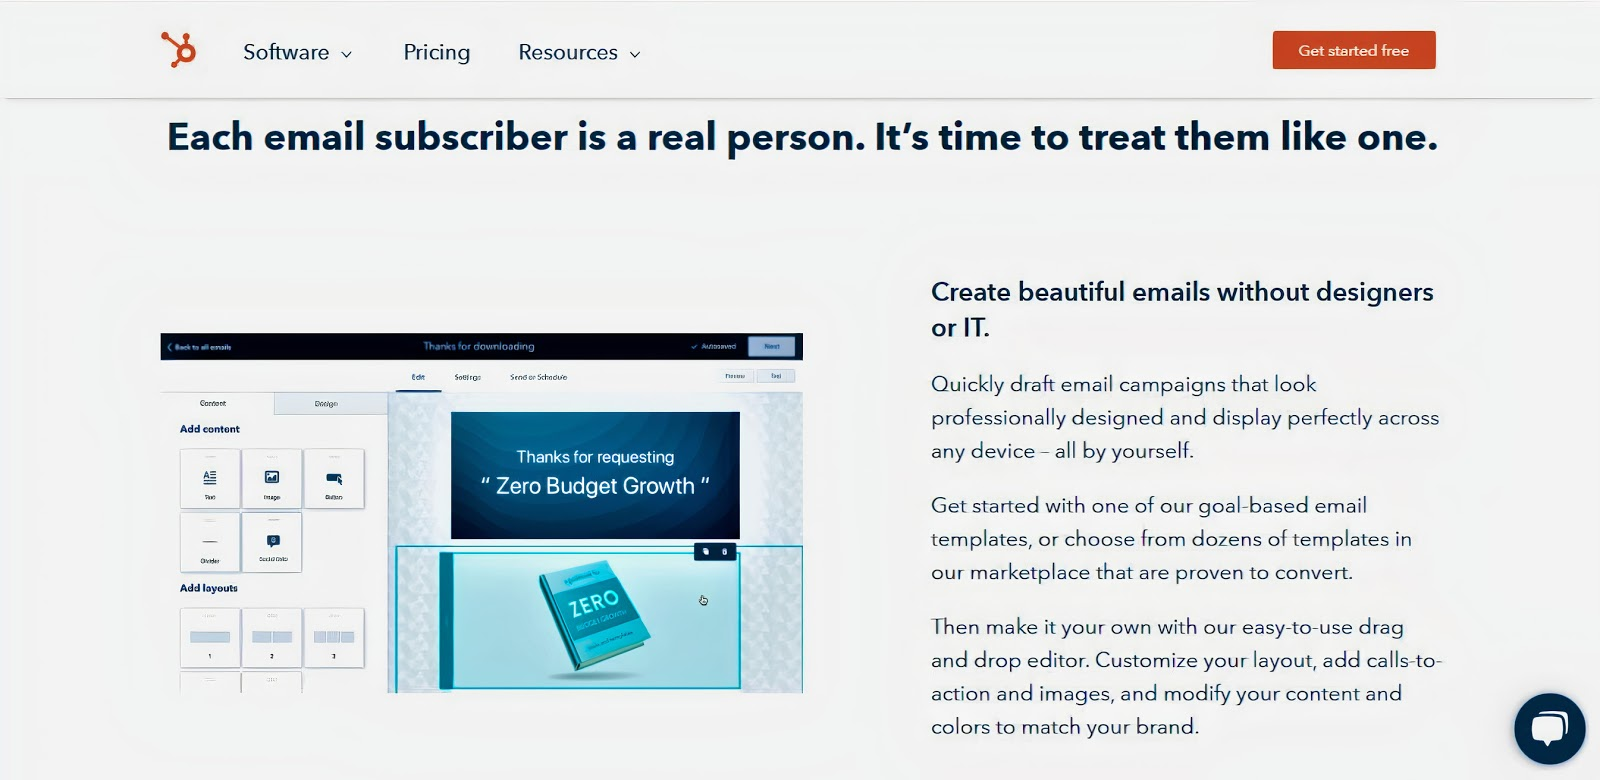 A screenshot of the HubSpot landing page about their email marketing tool